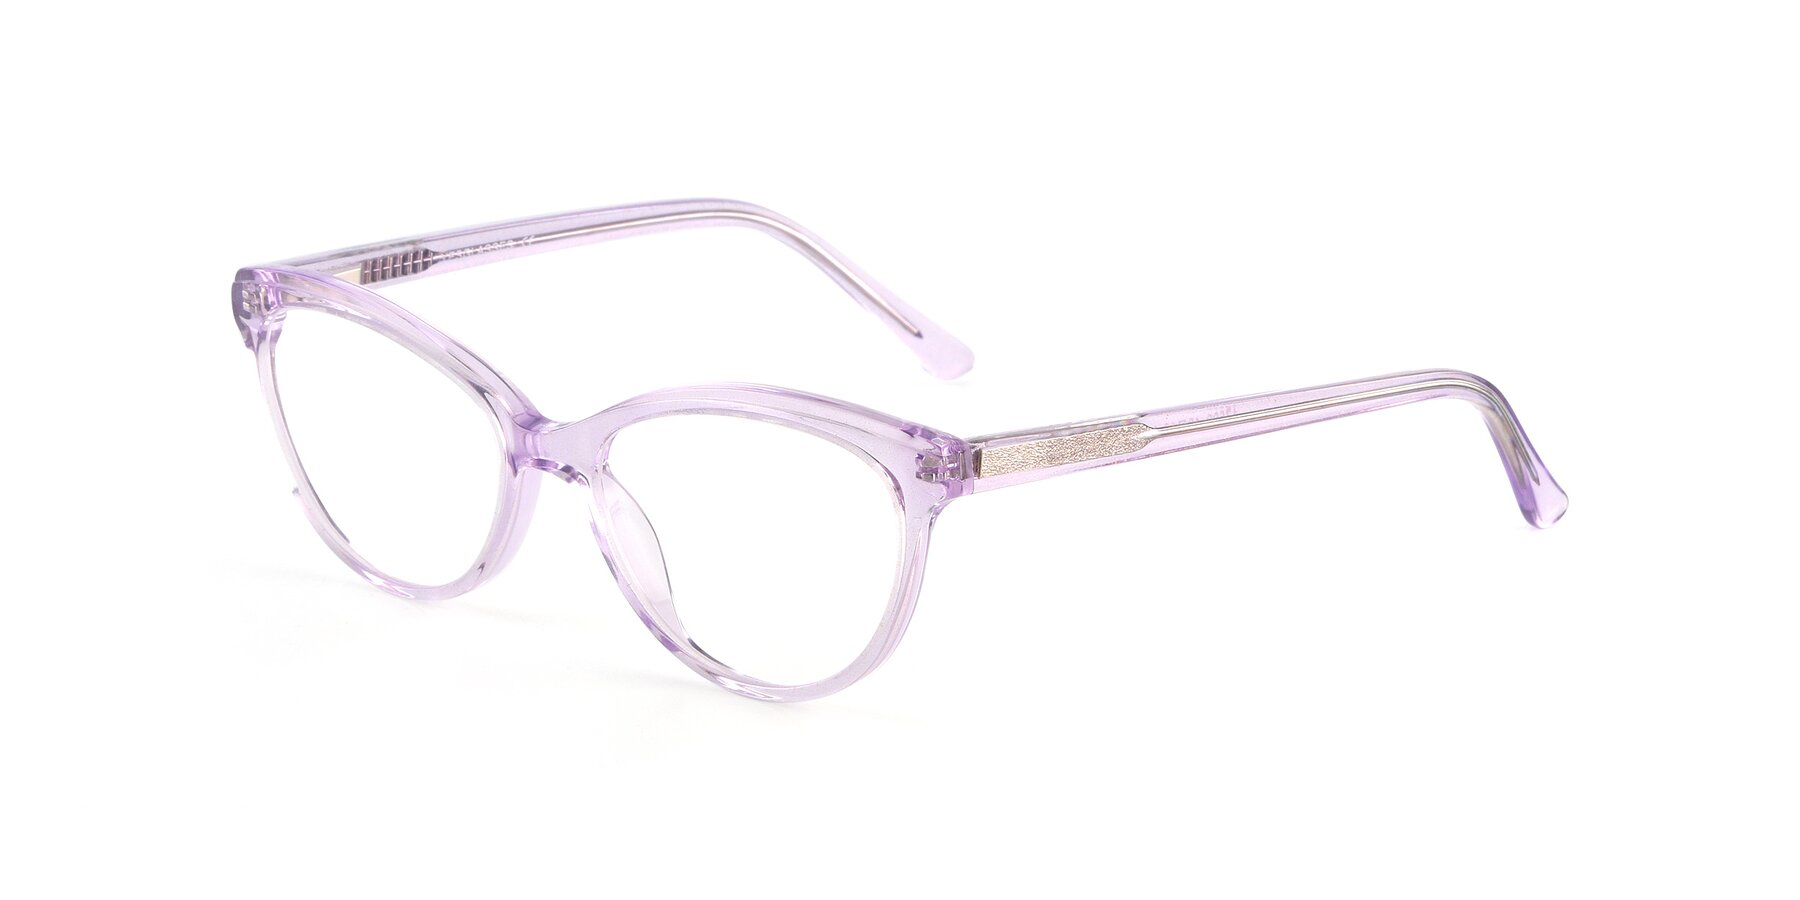 Angle of 17509 in Transparent Purple with Clear Eyeglass Lenses